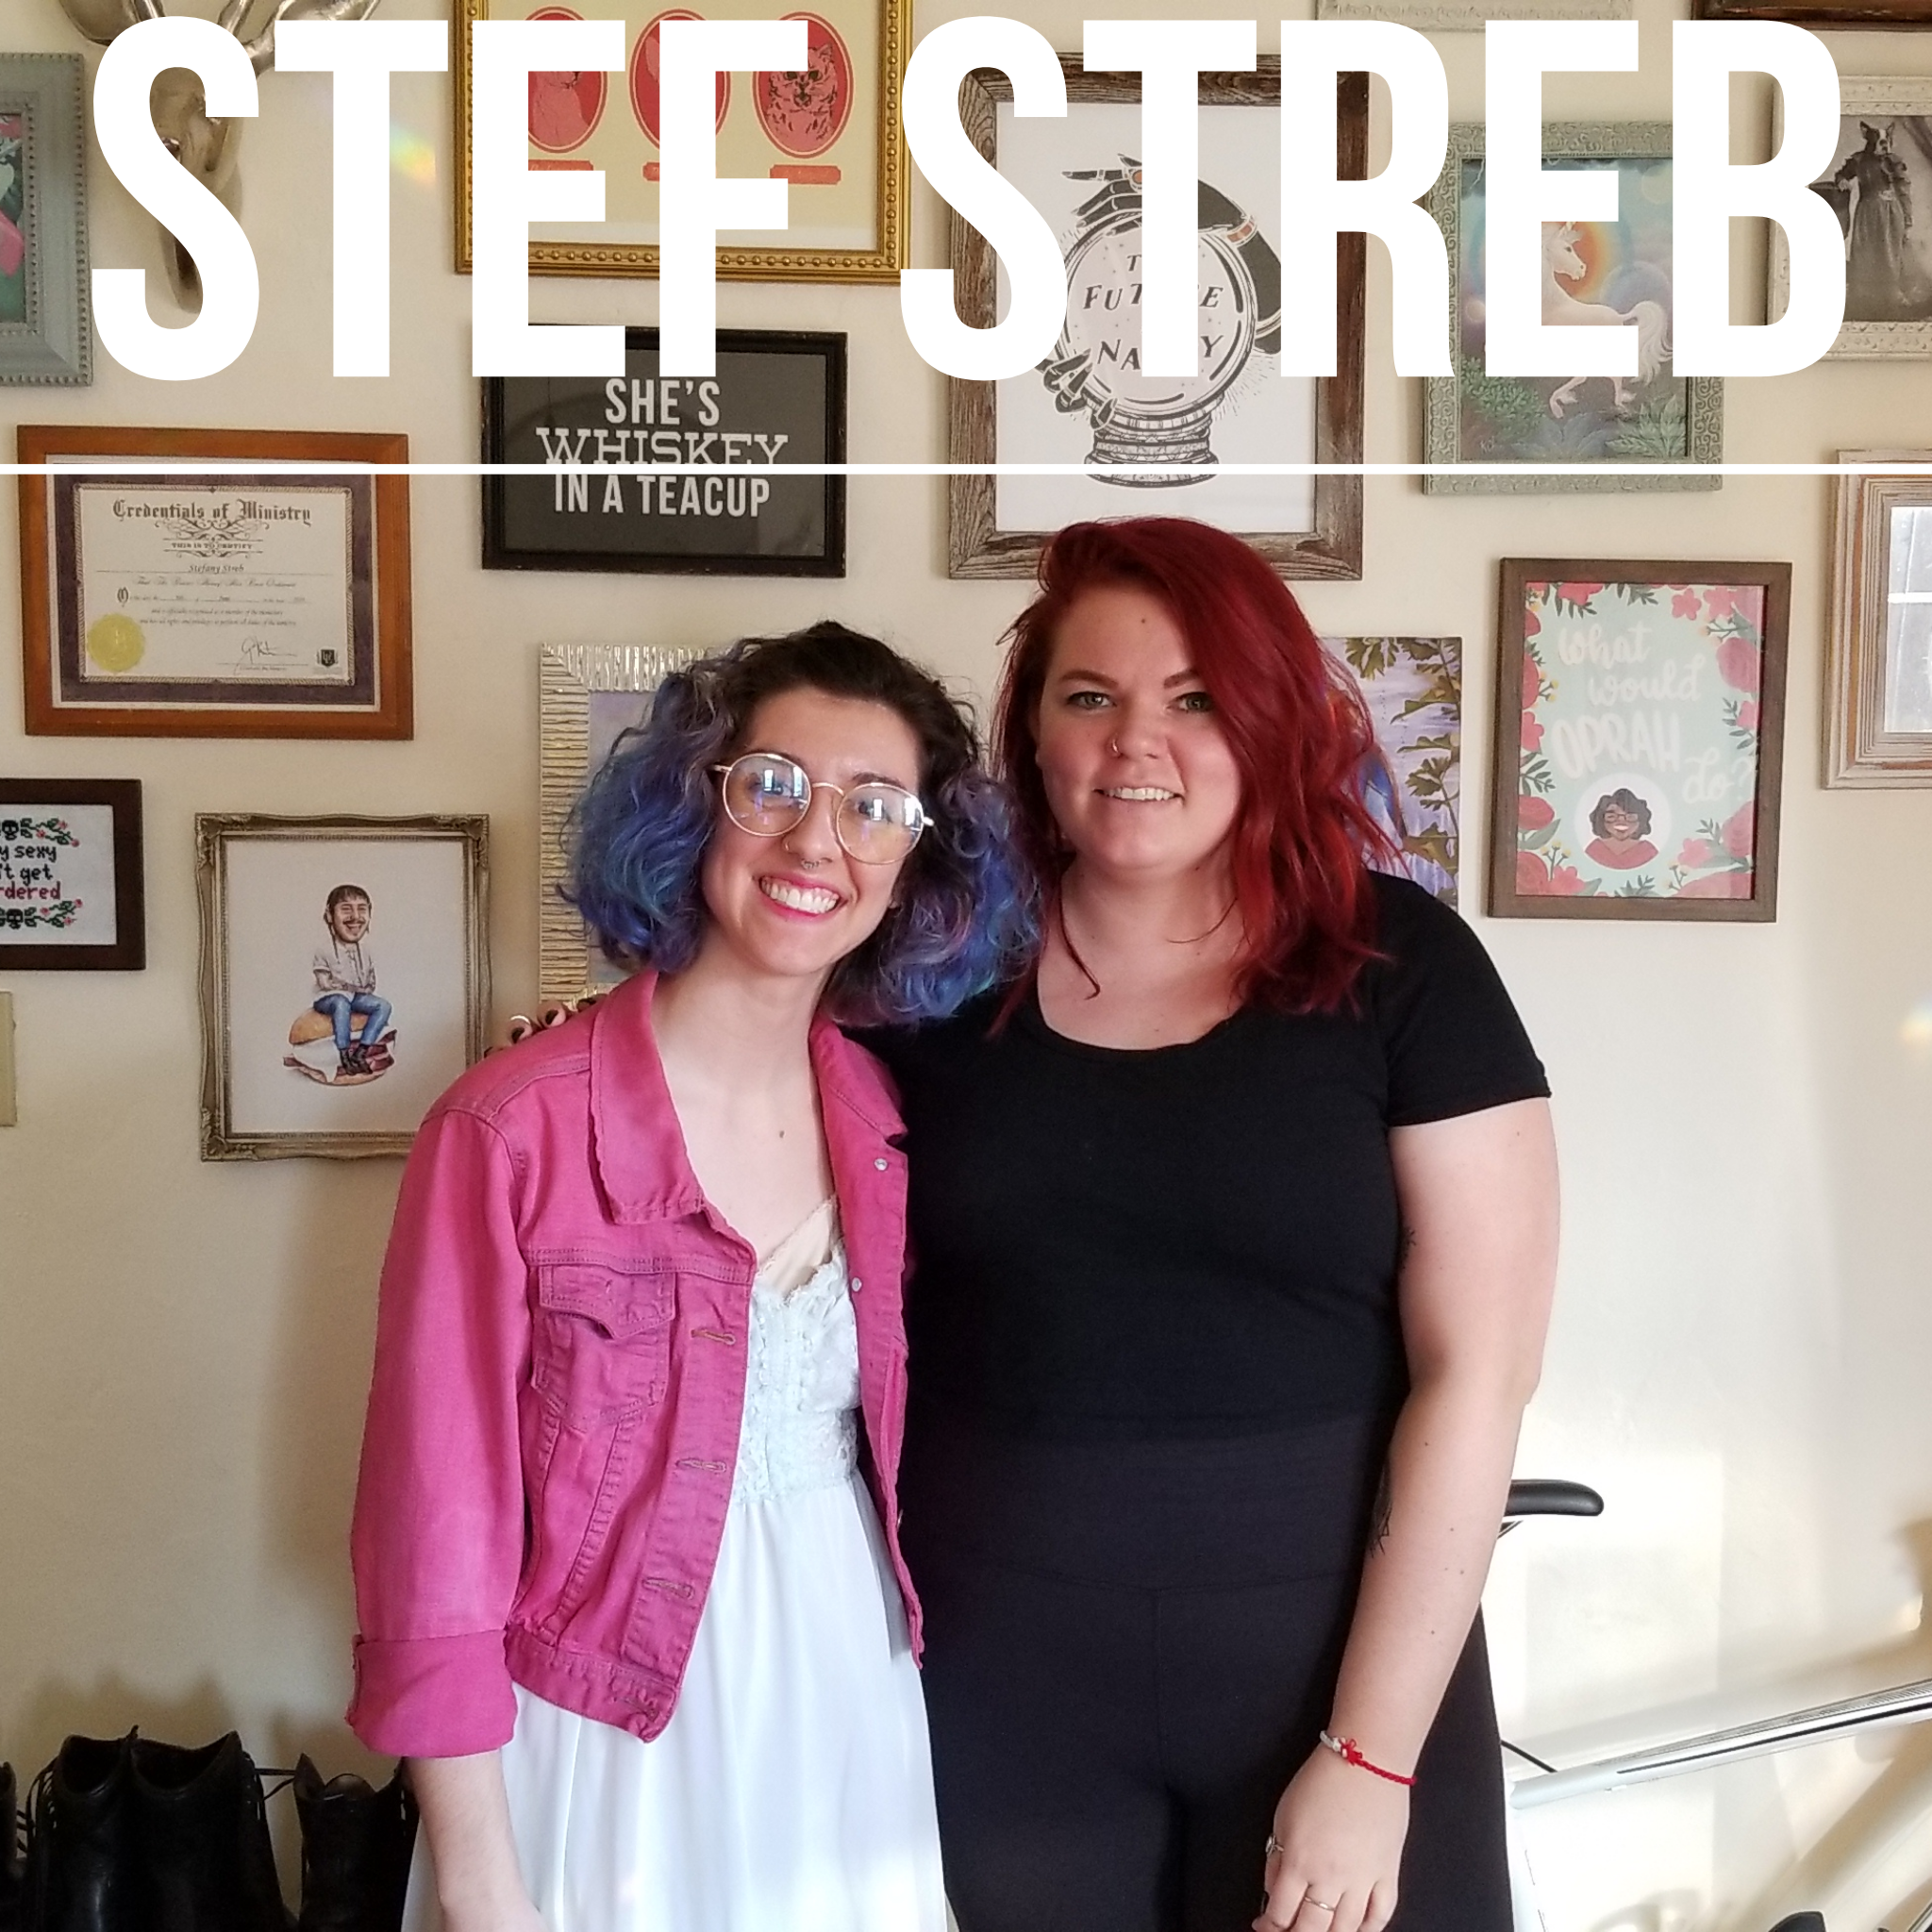 Lorrin with Stef Streb, a Columbus-based photographer